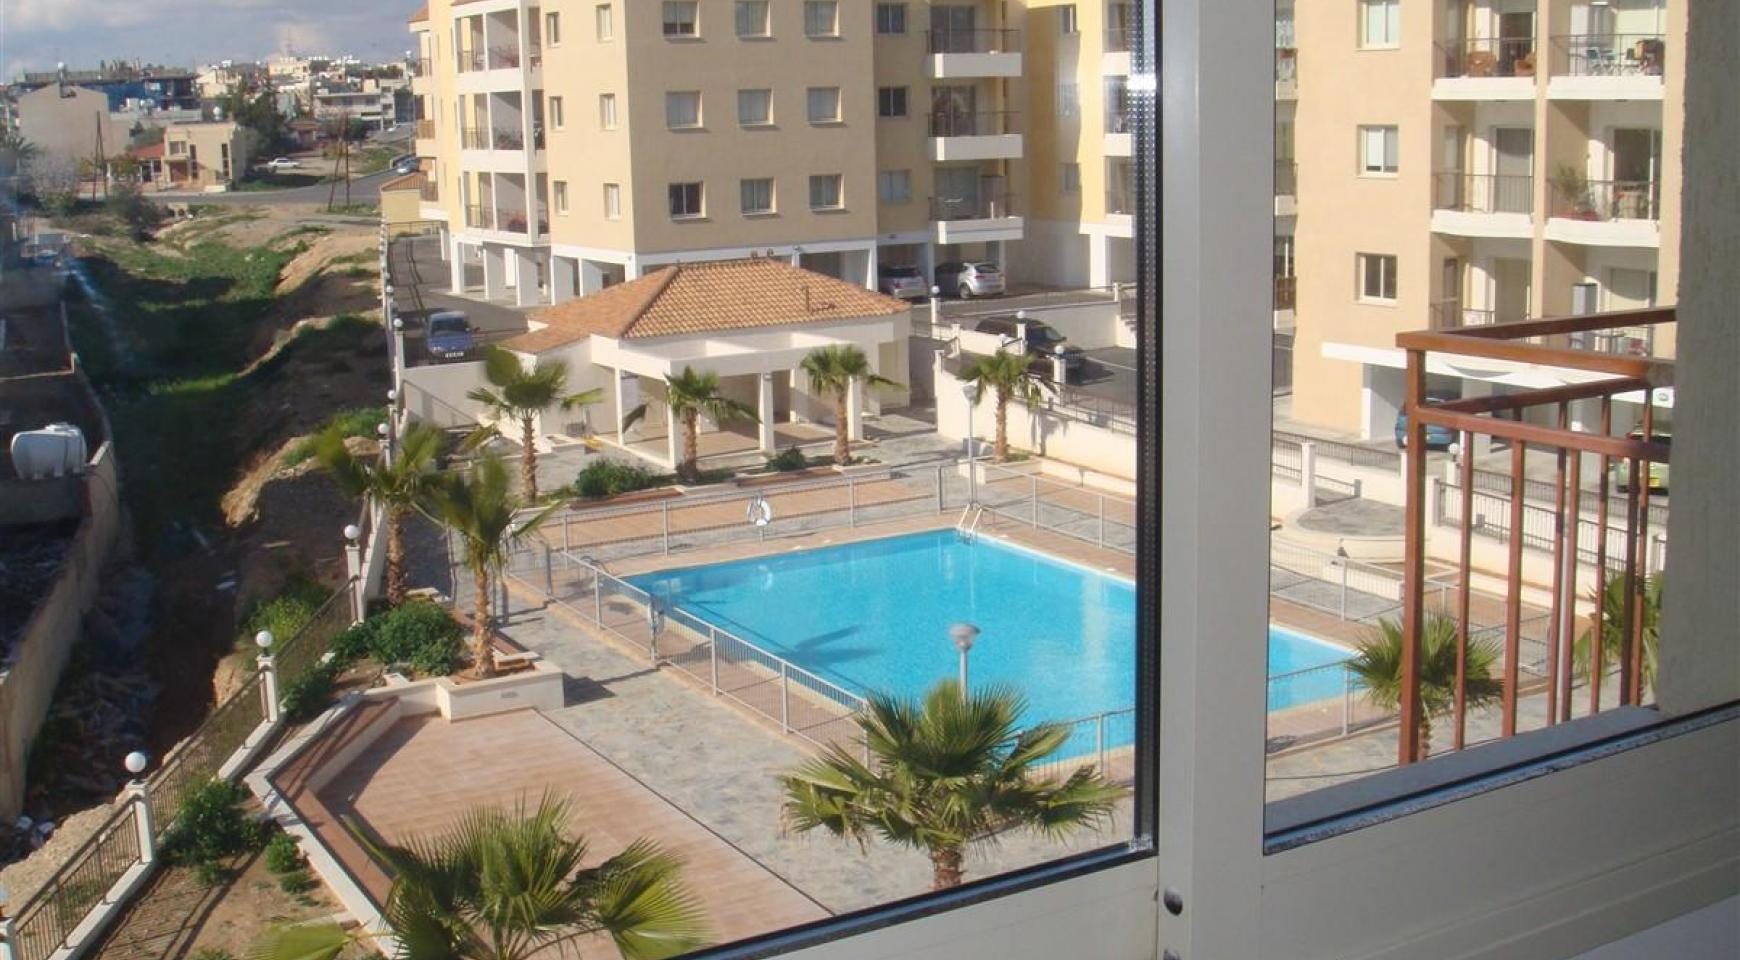 2 Bedroom Apartment in a Complex with the Swimming Pool - 8